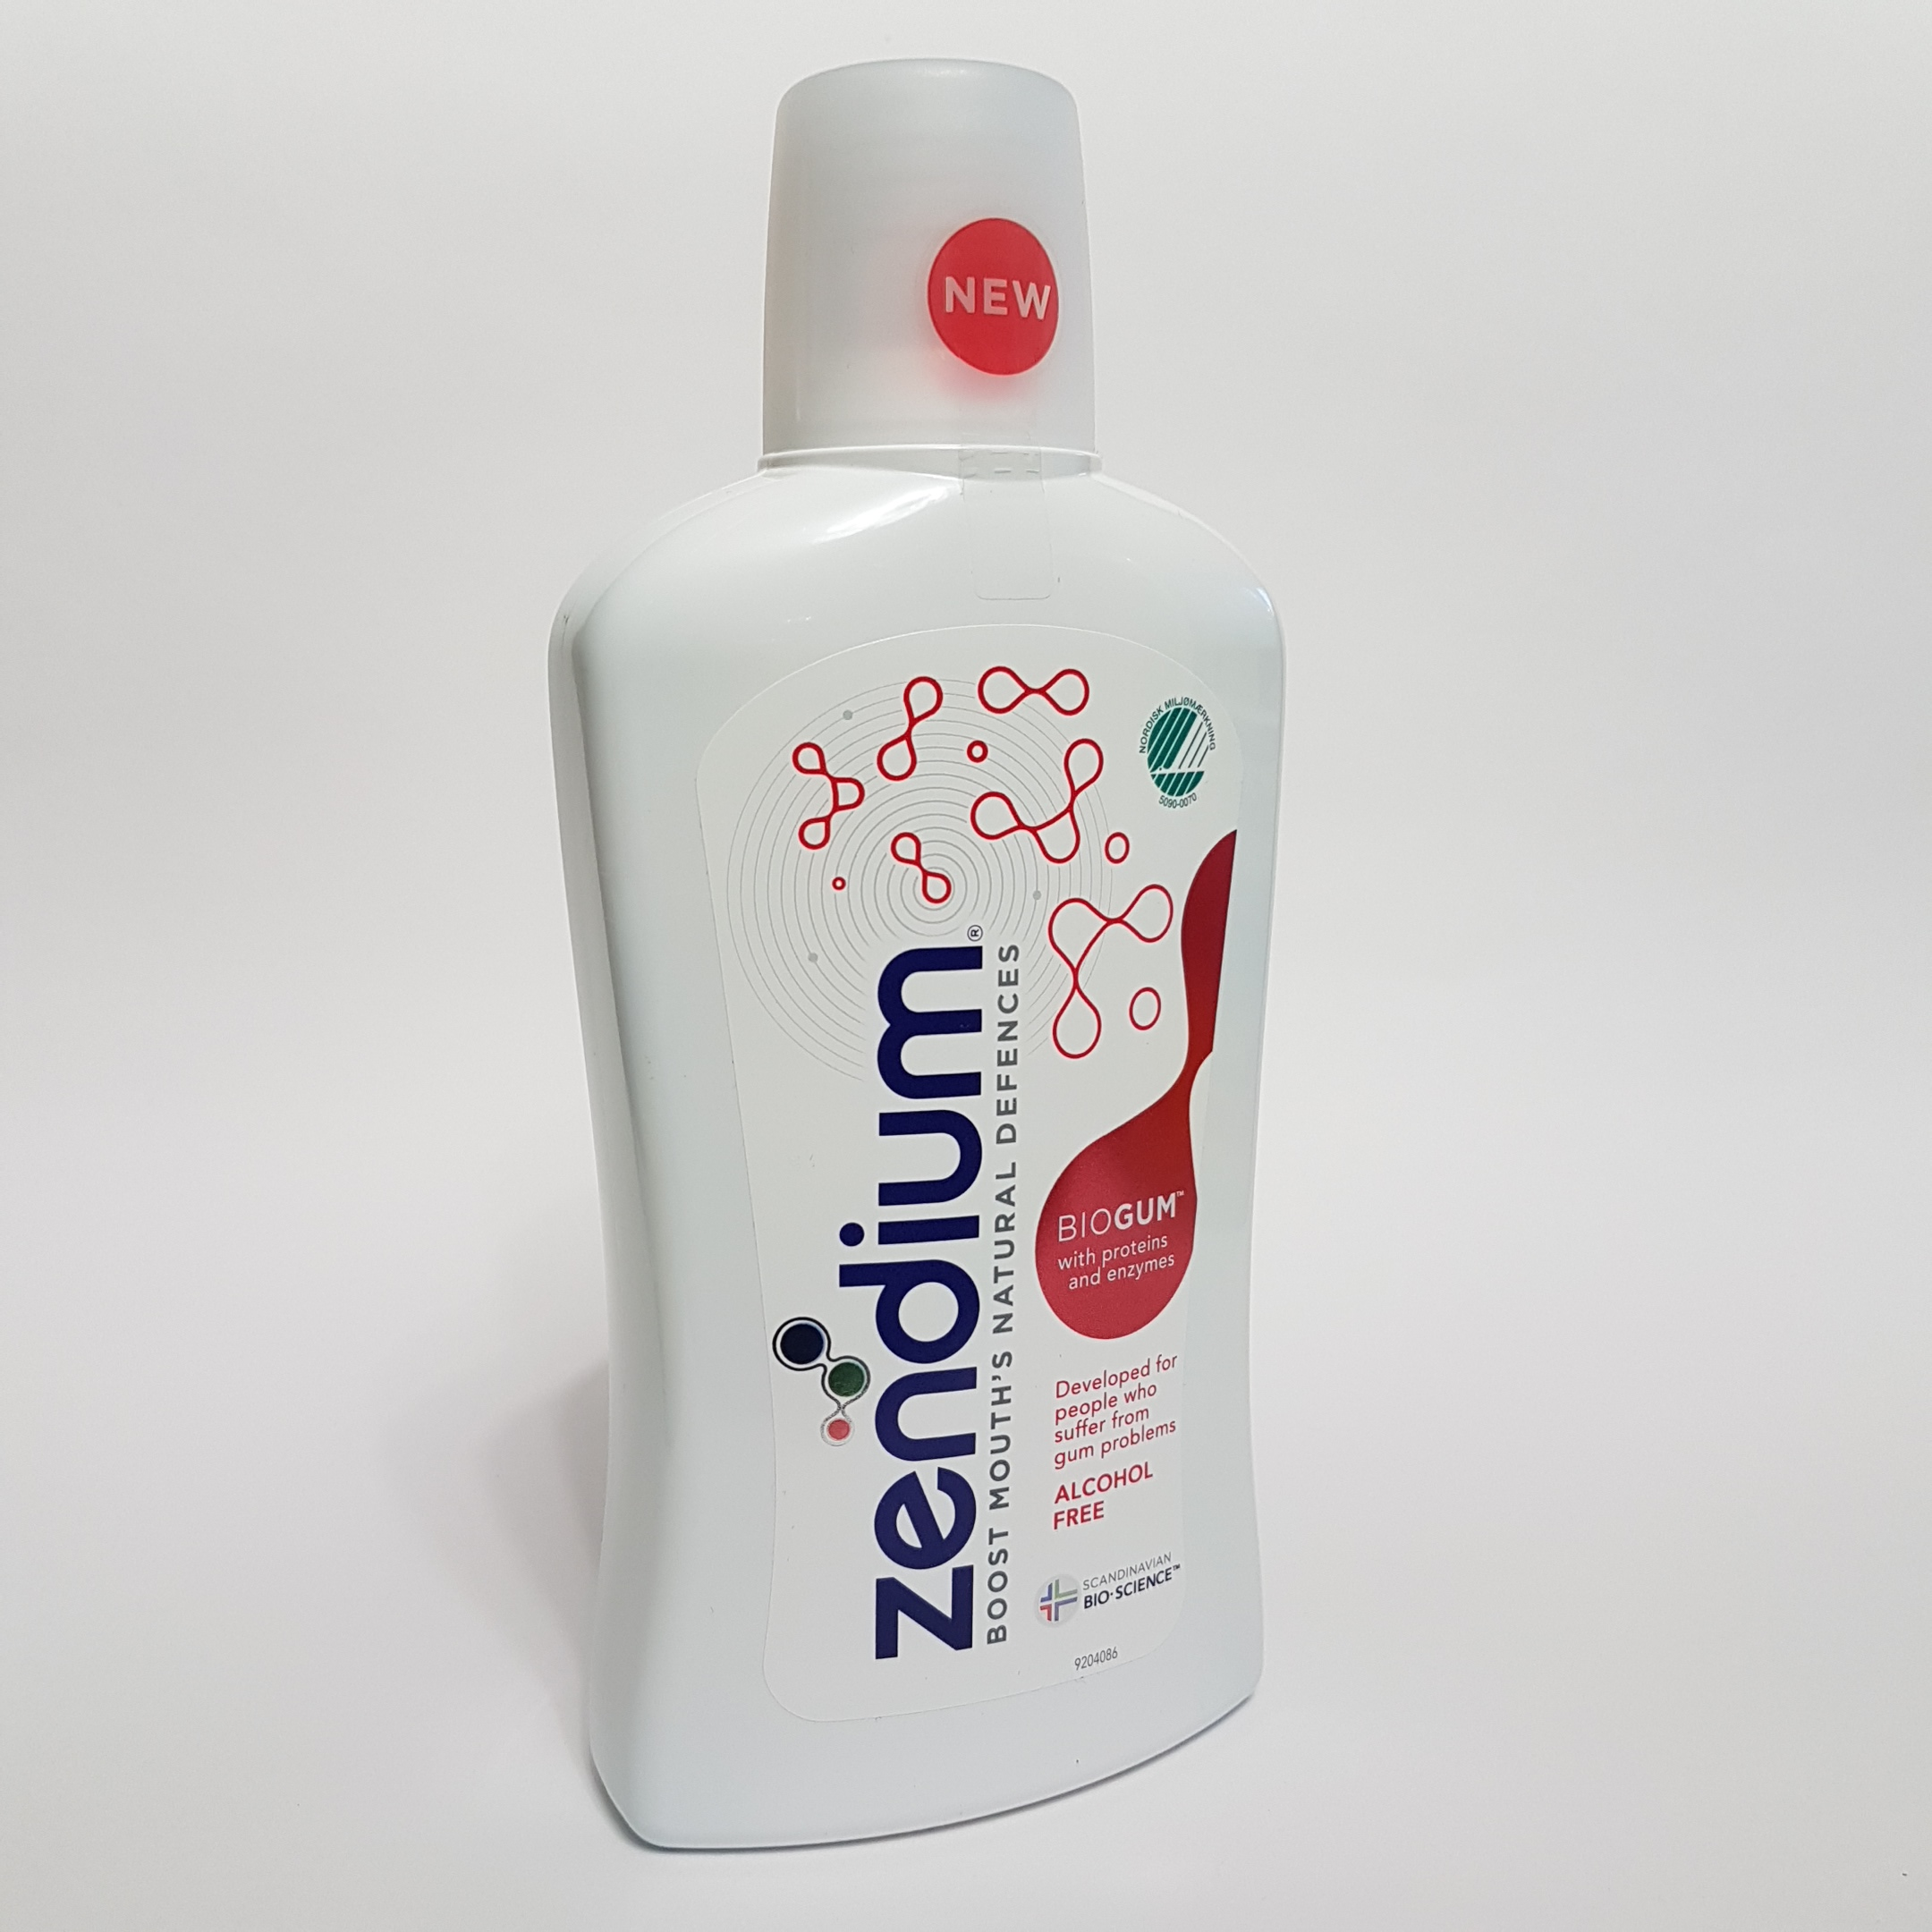 zendium-biogum-collutorio-500ml